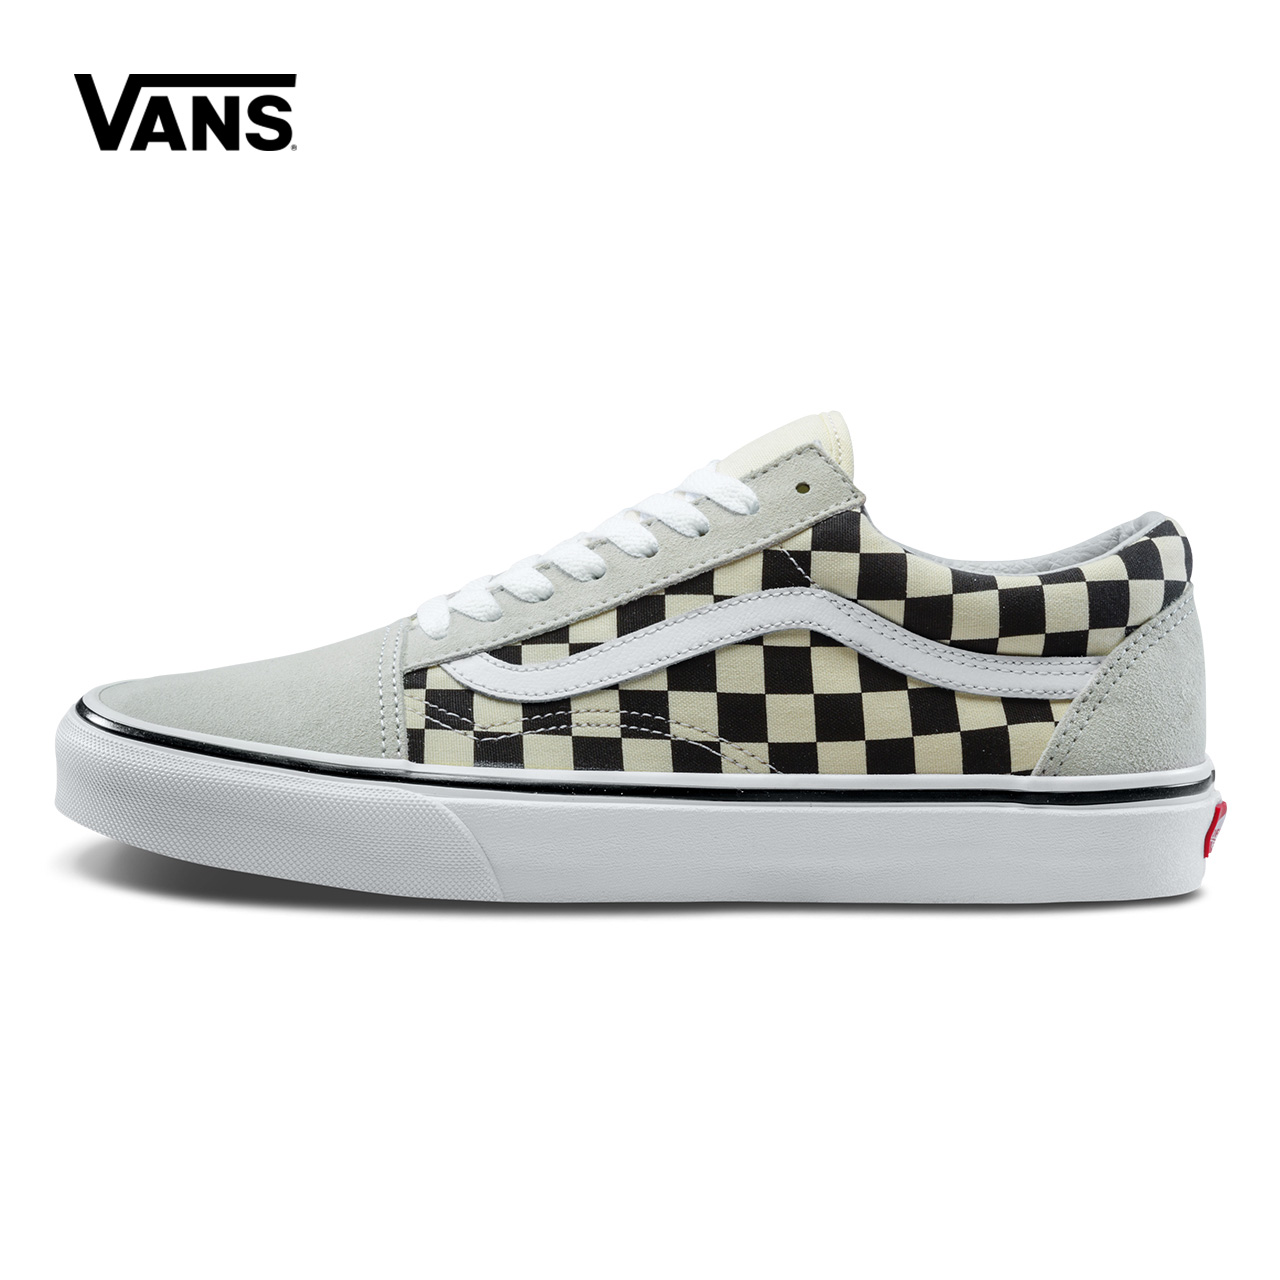 Original New Arrival Vans Mens   Womens Classic Old Skool Low-top  Skateboarding Shoes Sneakers Canvas Sport Outdoor VN0A38G127K 5923f4d71590